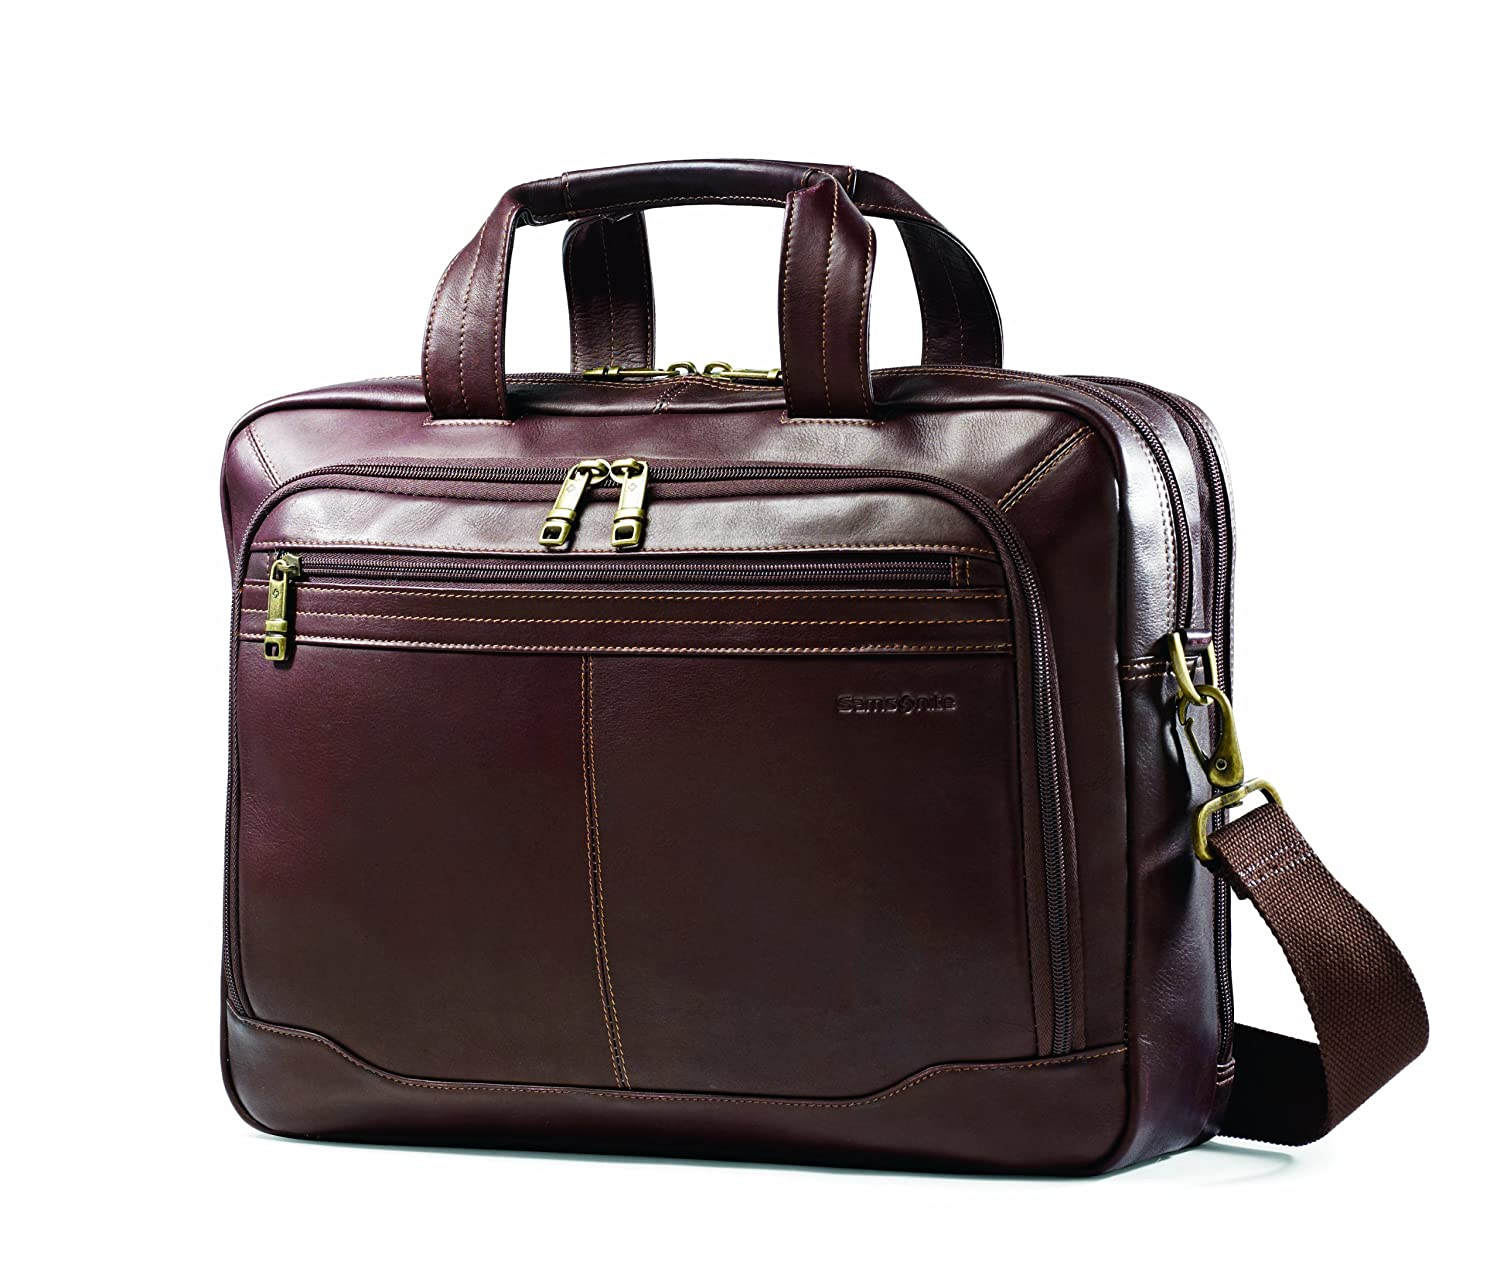 Samsonite Colombian Leather Toploader, Brown, One Size Samsonite Corporation 50792-1139